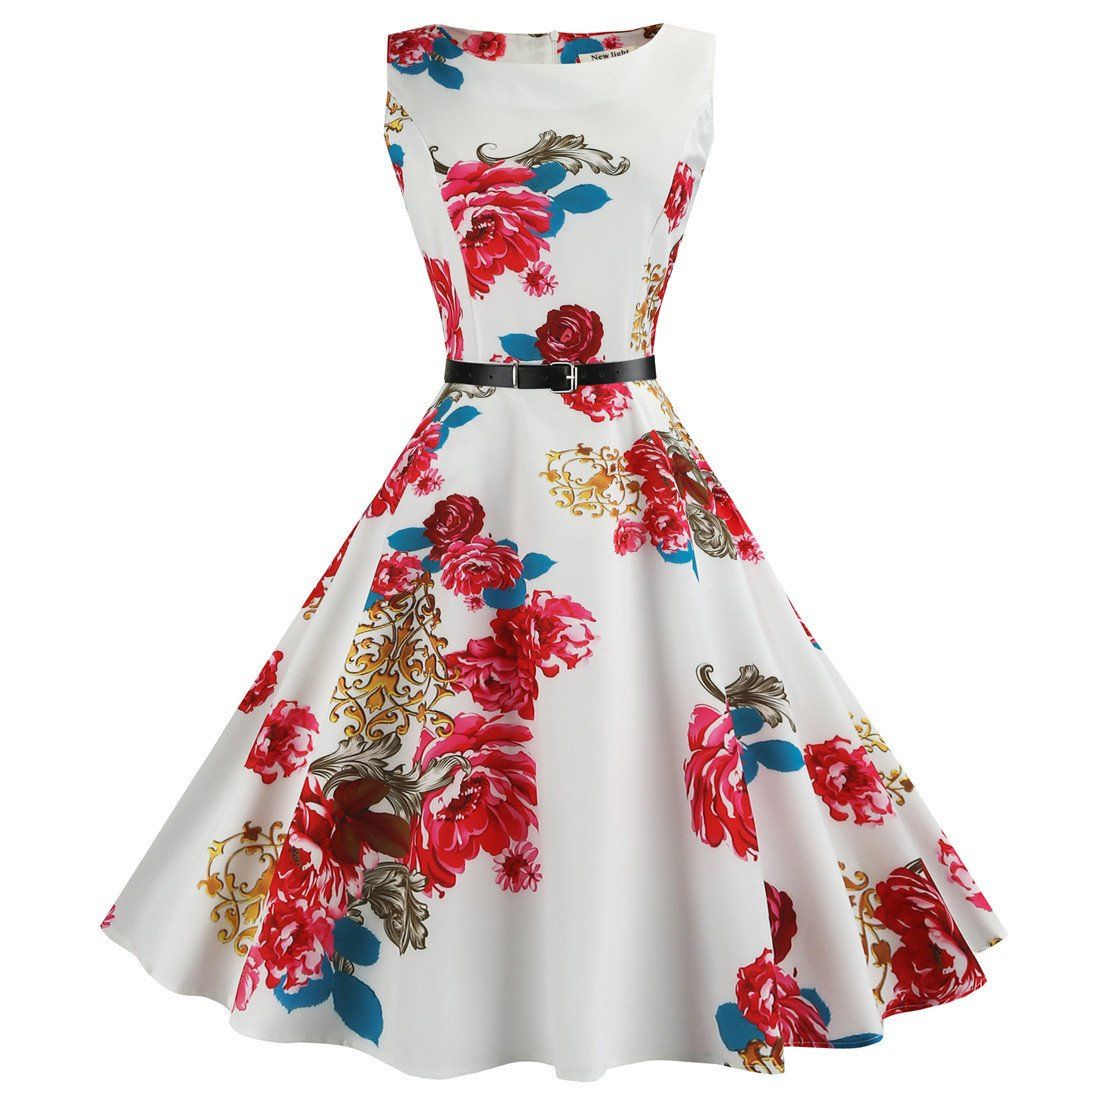 BOOMJIU Women Vintage Dress Hepburn Style Retro Sleeveless Printed Belt Slim Dress